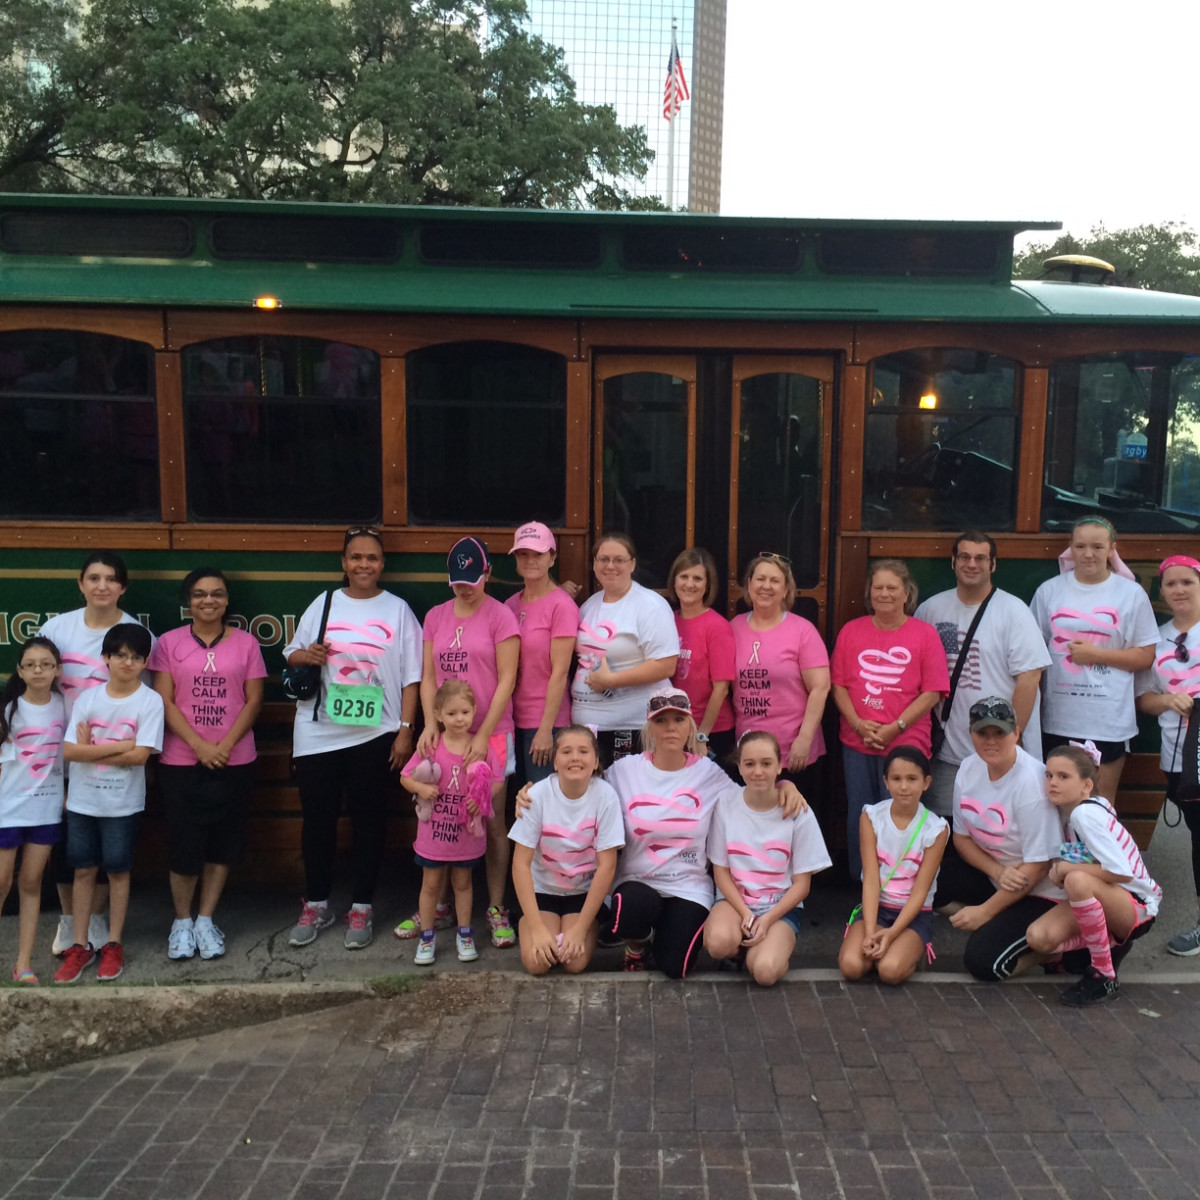 AmCap Race for the Cure participants